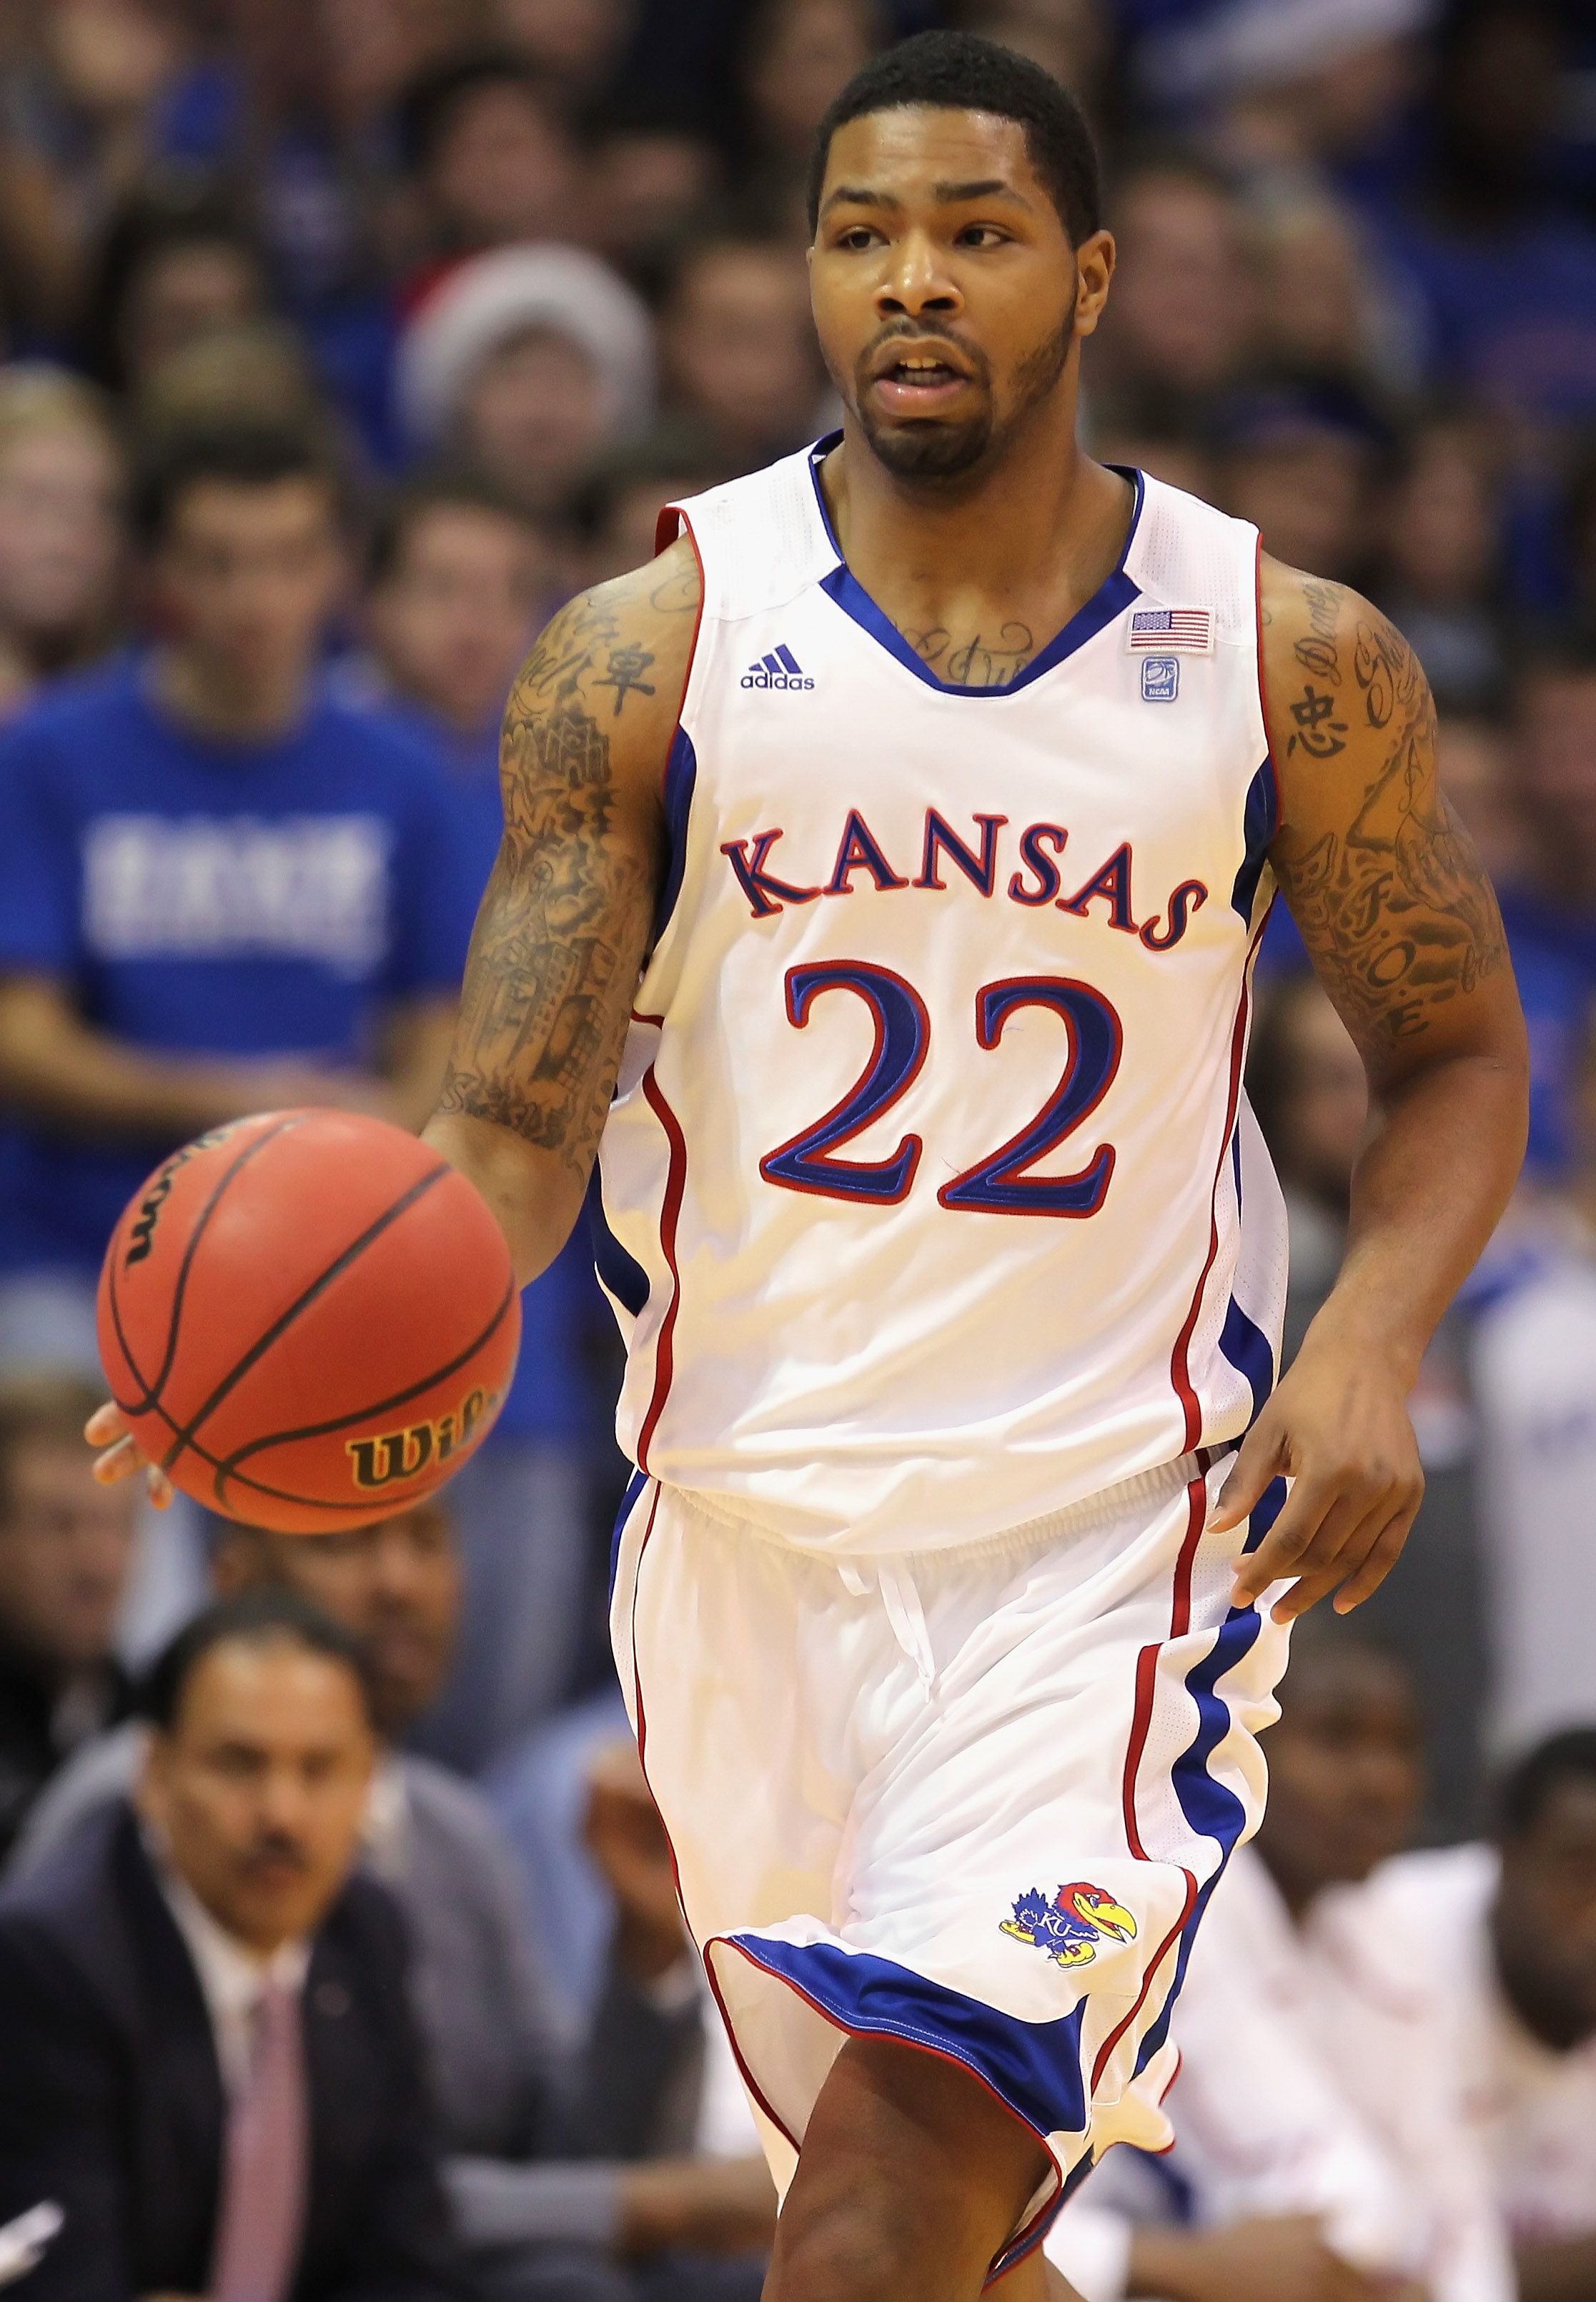 LAWRENCE, KS - DECEMBER 18:  Marcus Morris #22 of the Kansas Jayhawks in action during the game against the USC Trojans on December 18, 2010 at Allen Fieldhouse in Lawrence, Kansas.  (Photo by Jamie Squire/Getty Images)